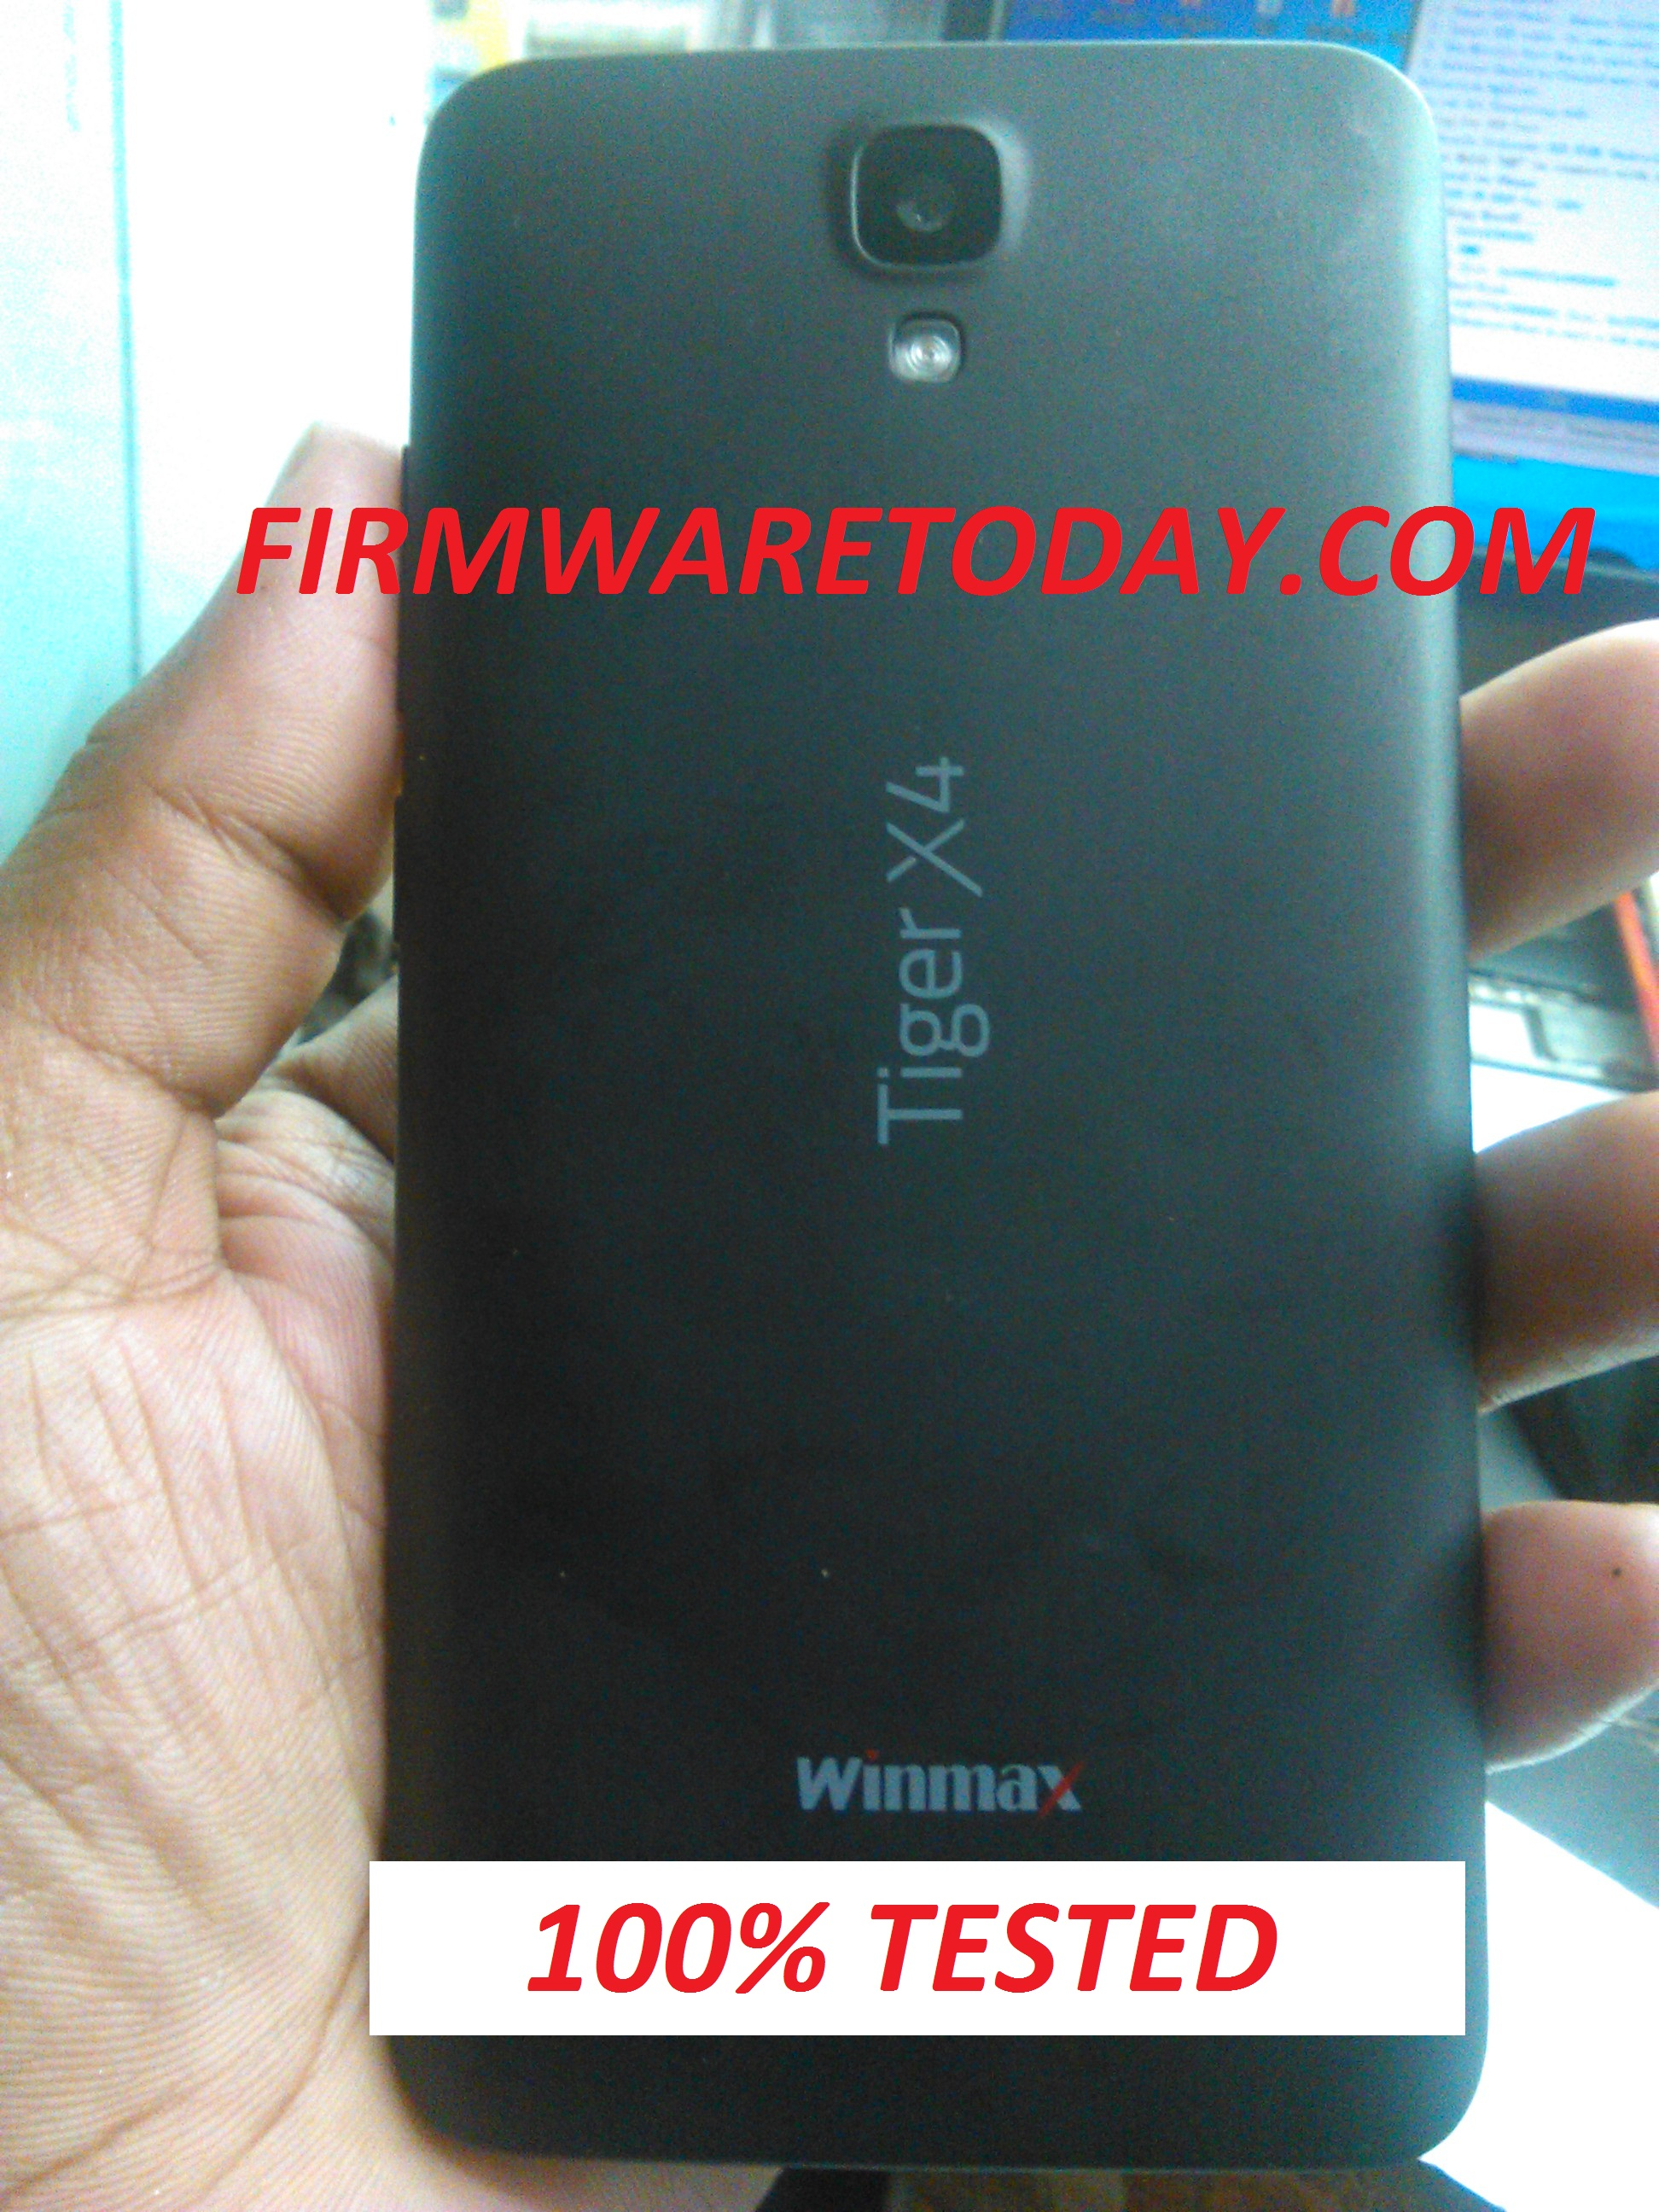 WINMAX Tiger X4 official firmware Free 2nd Update (MT6580) 1000% tested by firmwaretoday.com